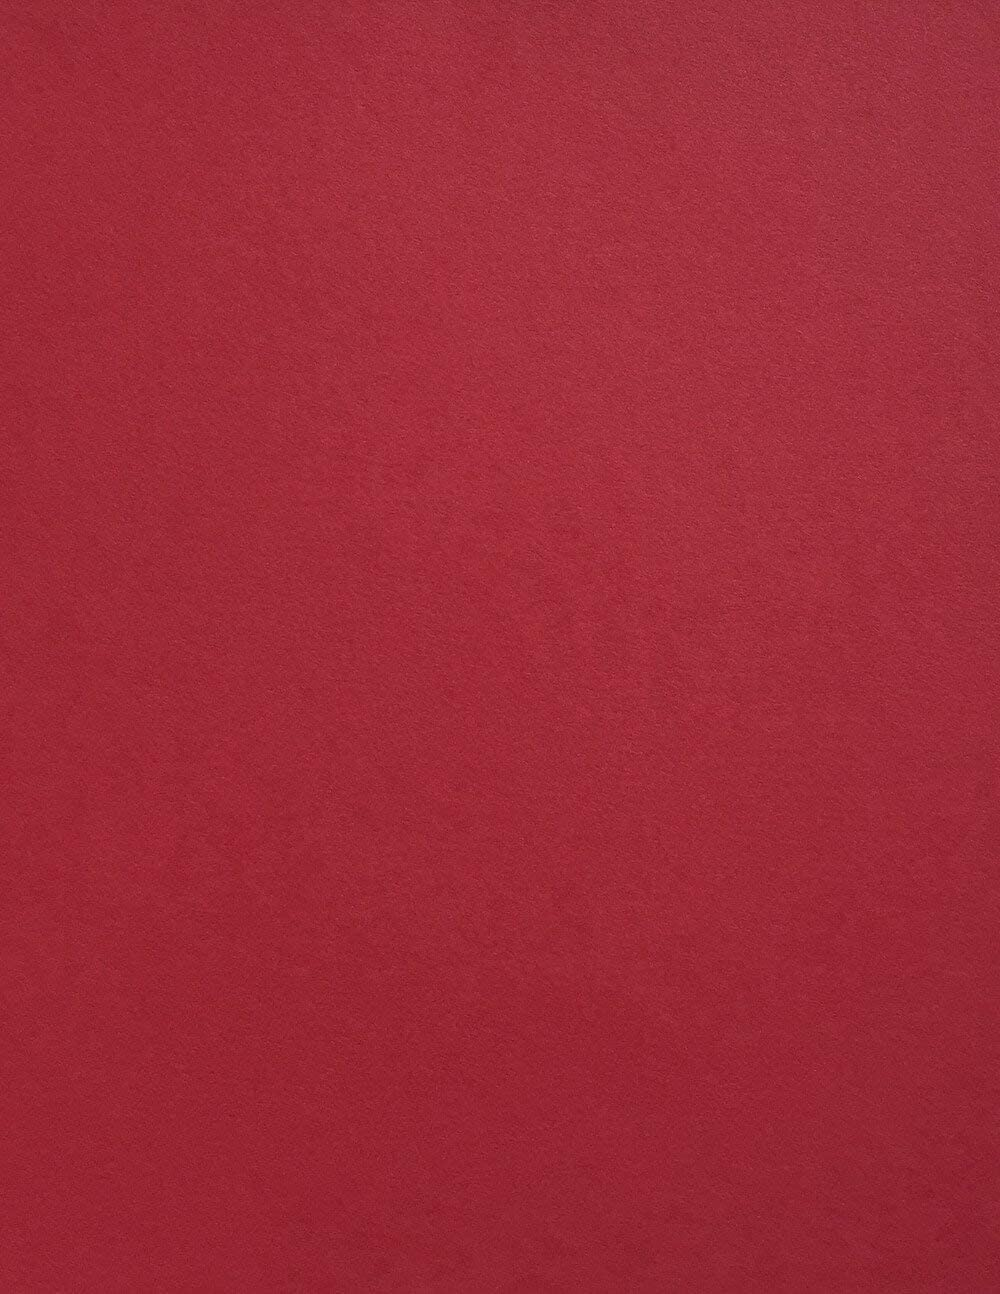 8.5 x 11 inch Premium 100 lb Vermillion RED//Dark RED Cardstock Paper 25 Sheets from Cardstock Warehouse Cover